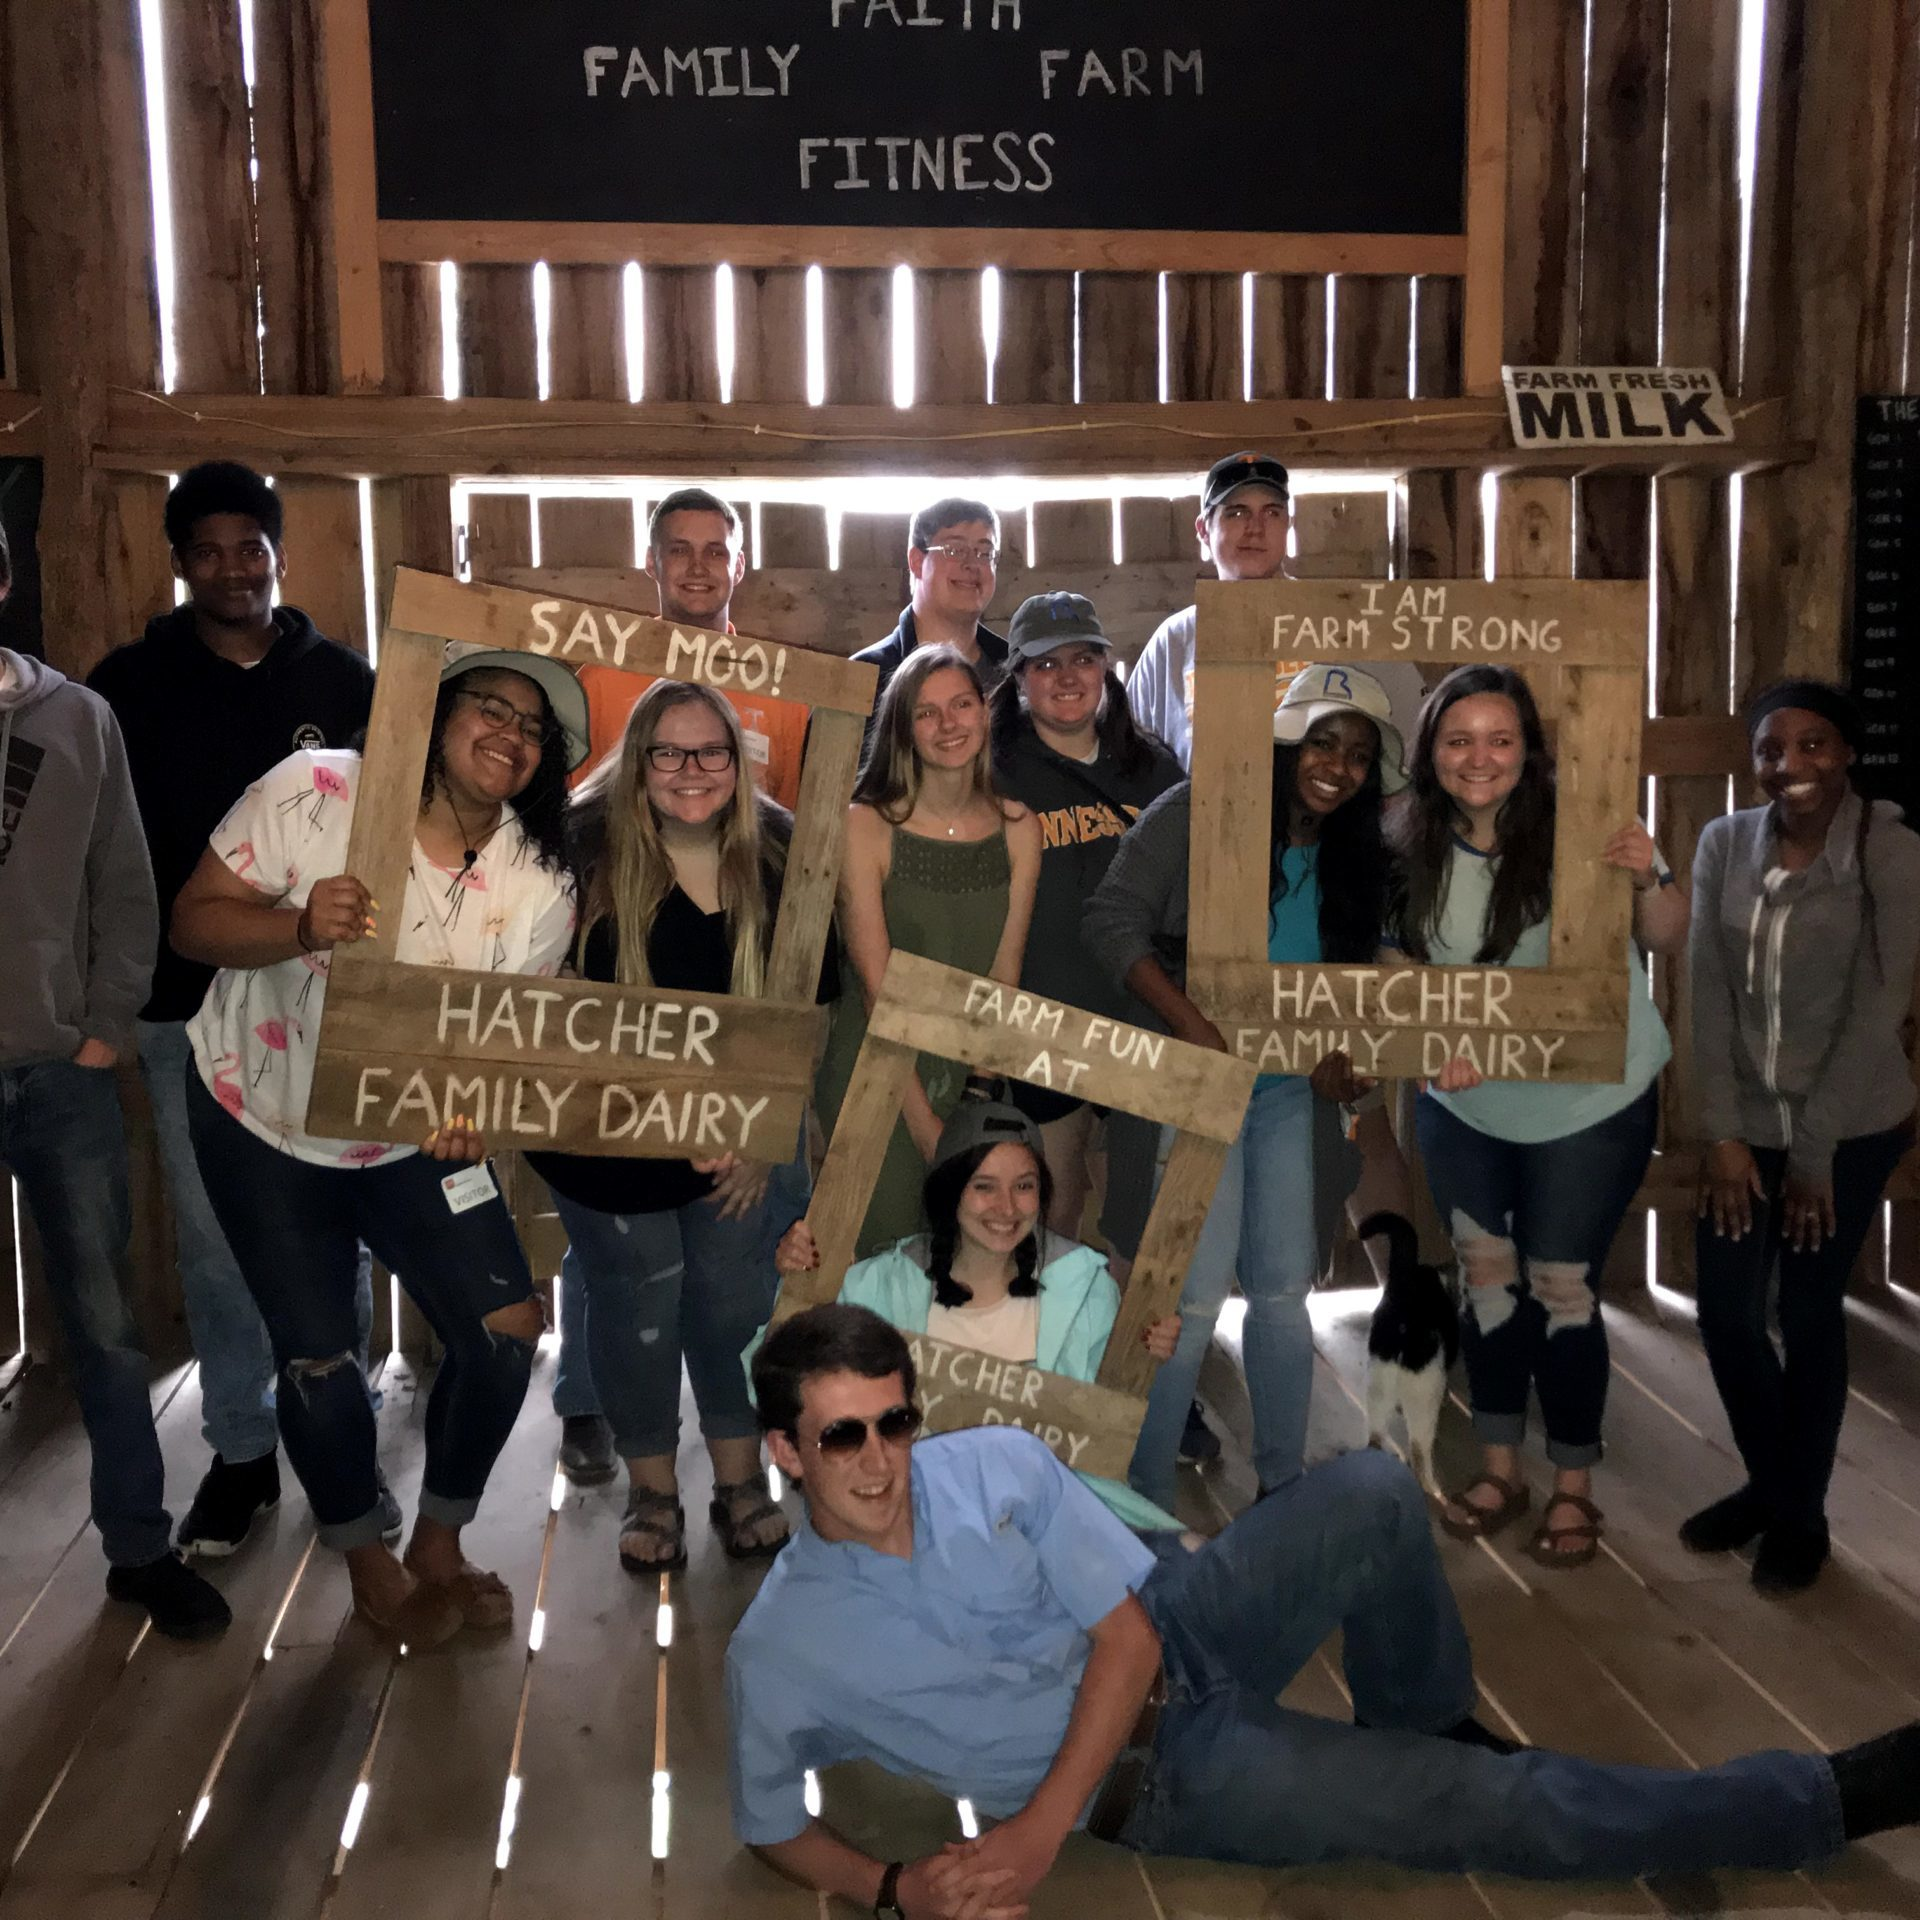 Students in Herbert Life LLC visit Hatcher Family Dairy